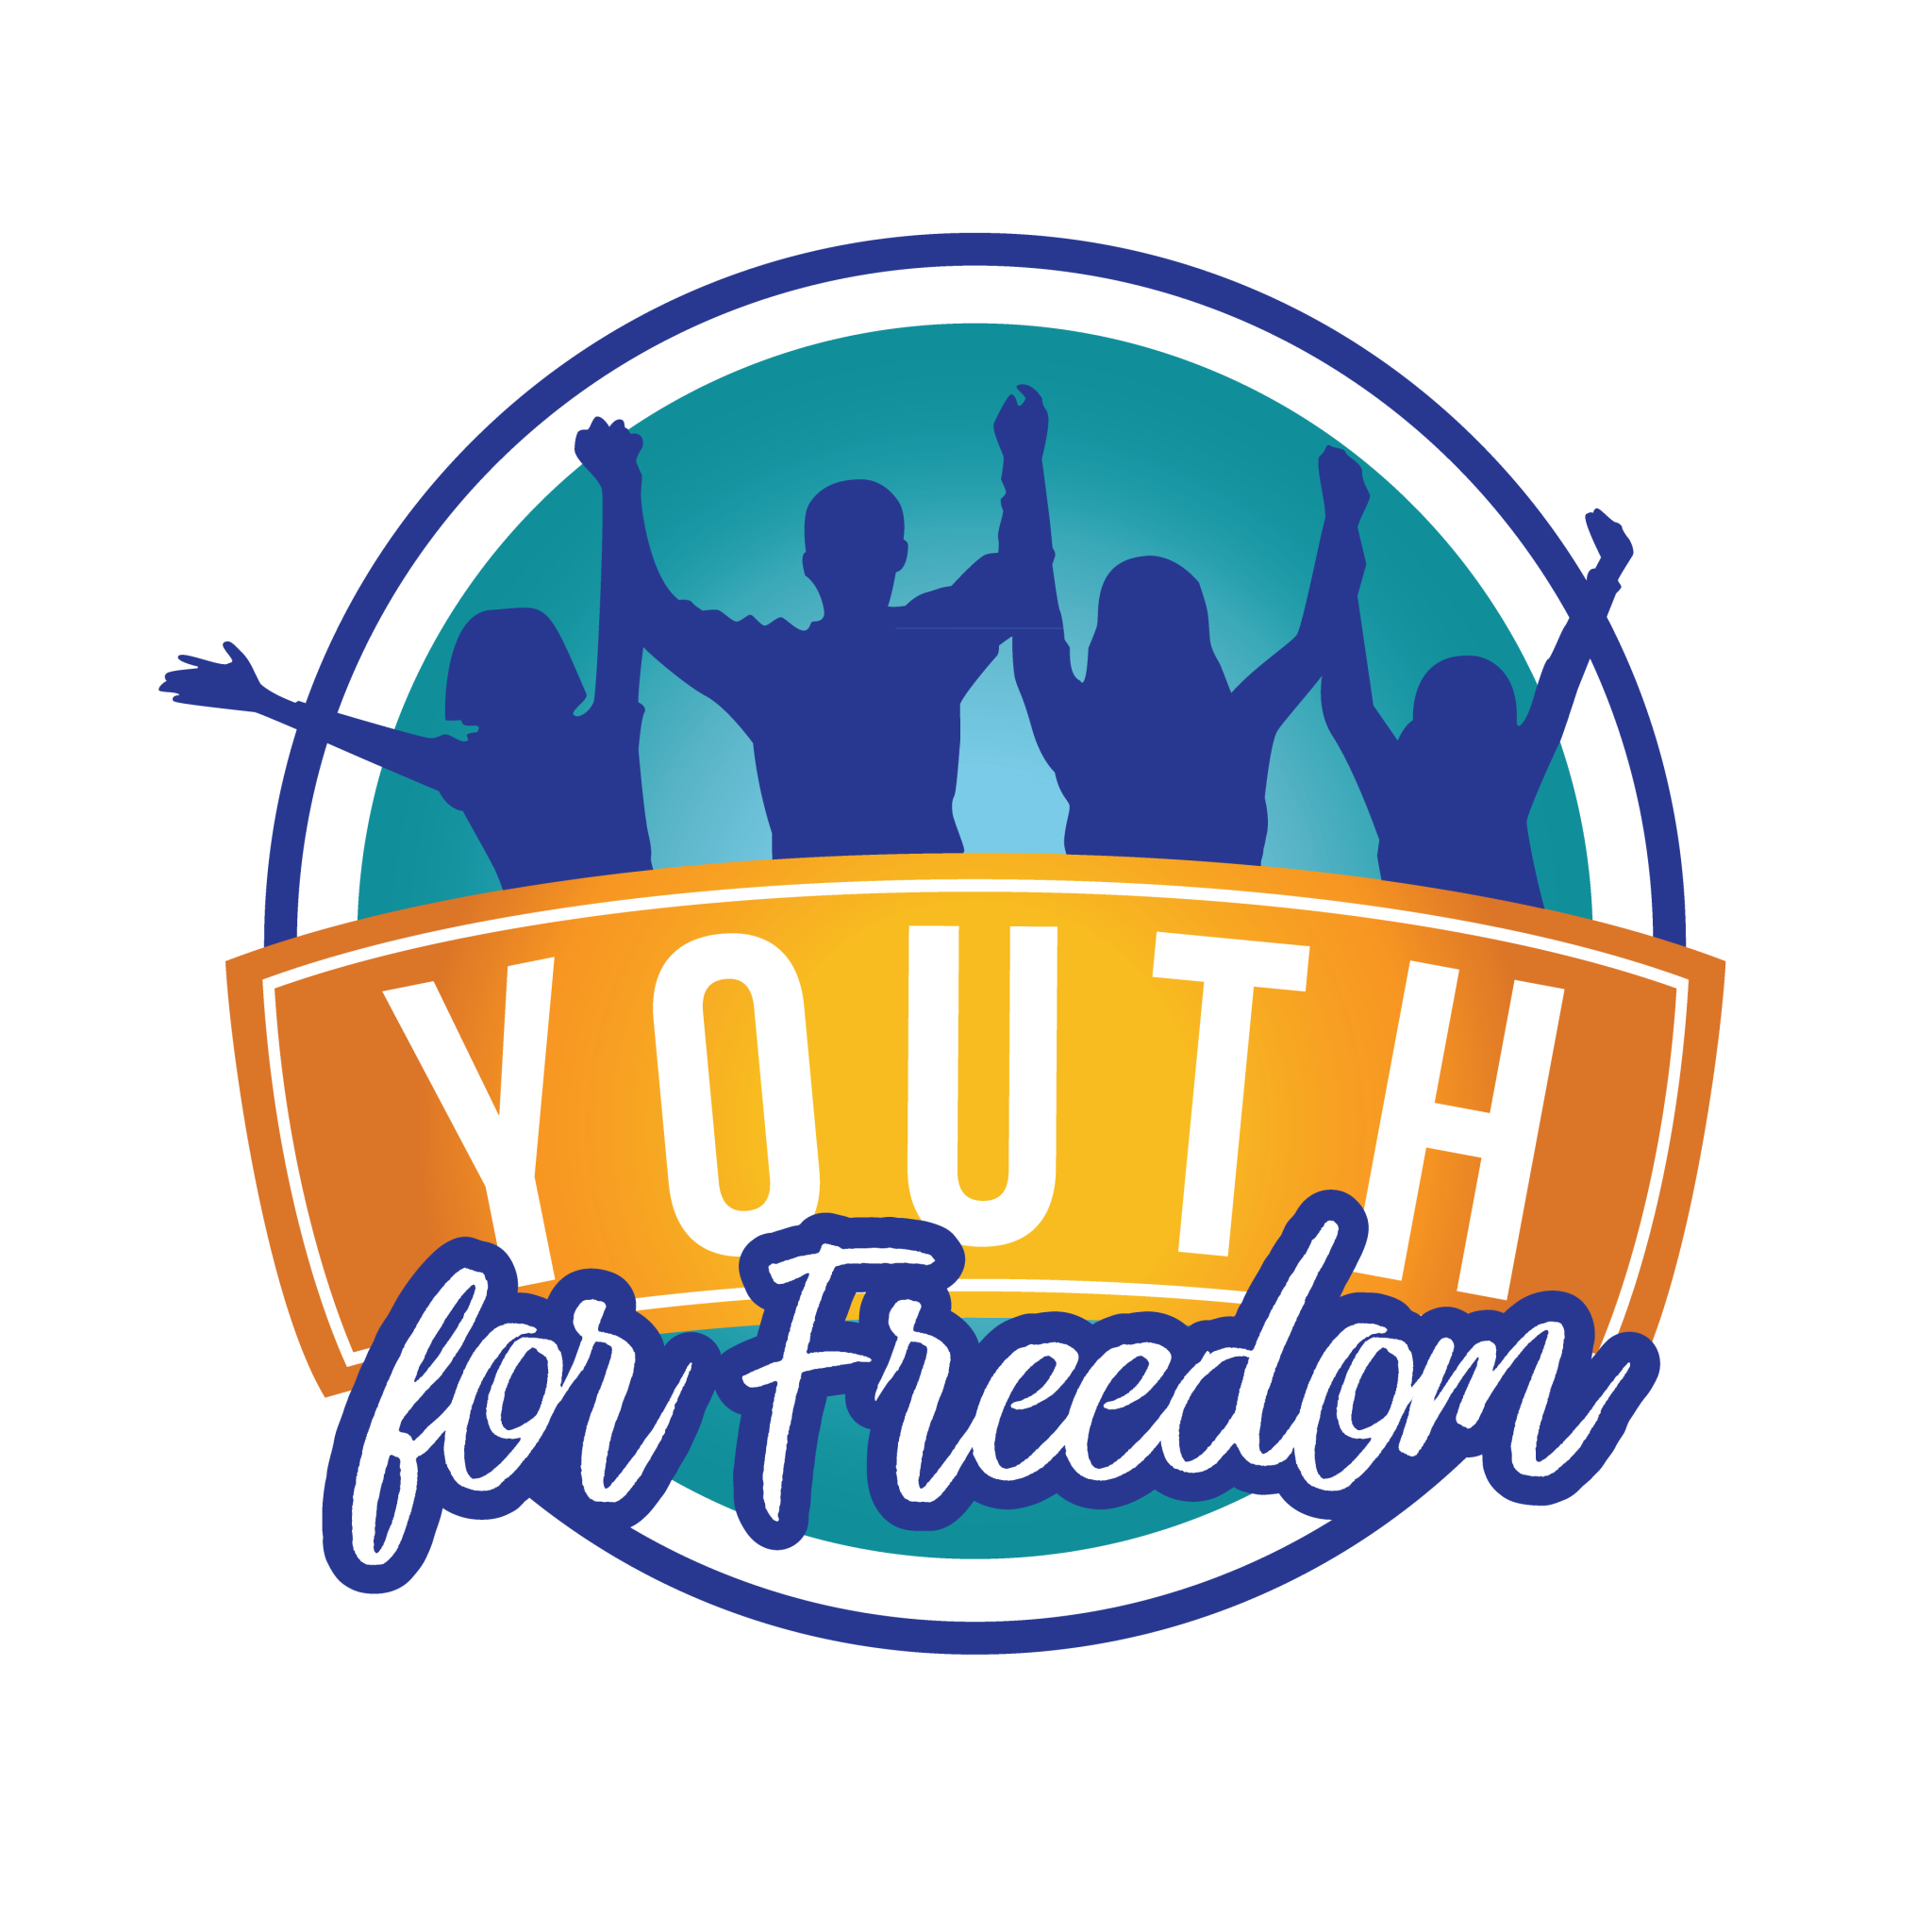 Upcoming events clipart youth.